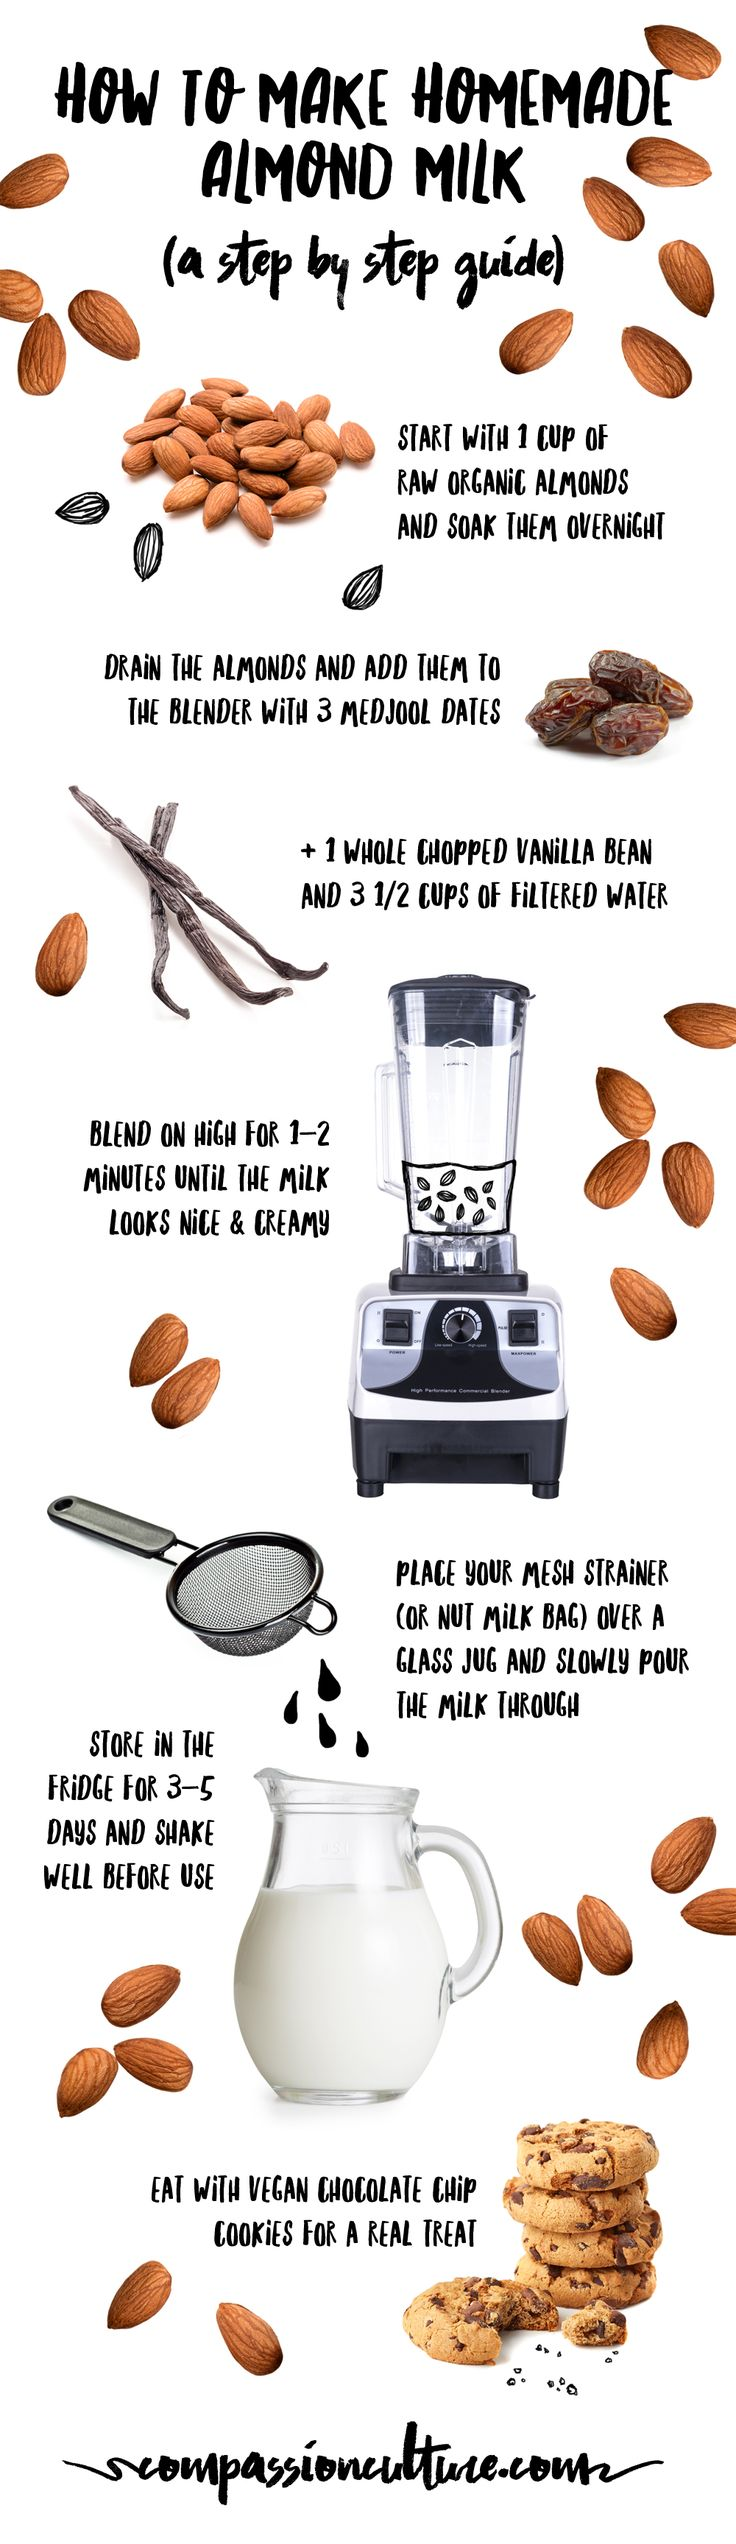 How to make homemade almond milk (a step by step guide)